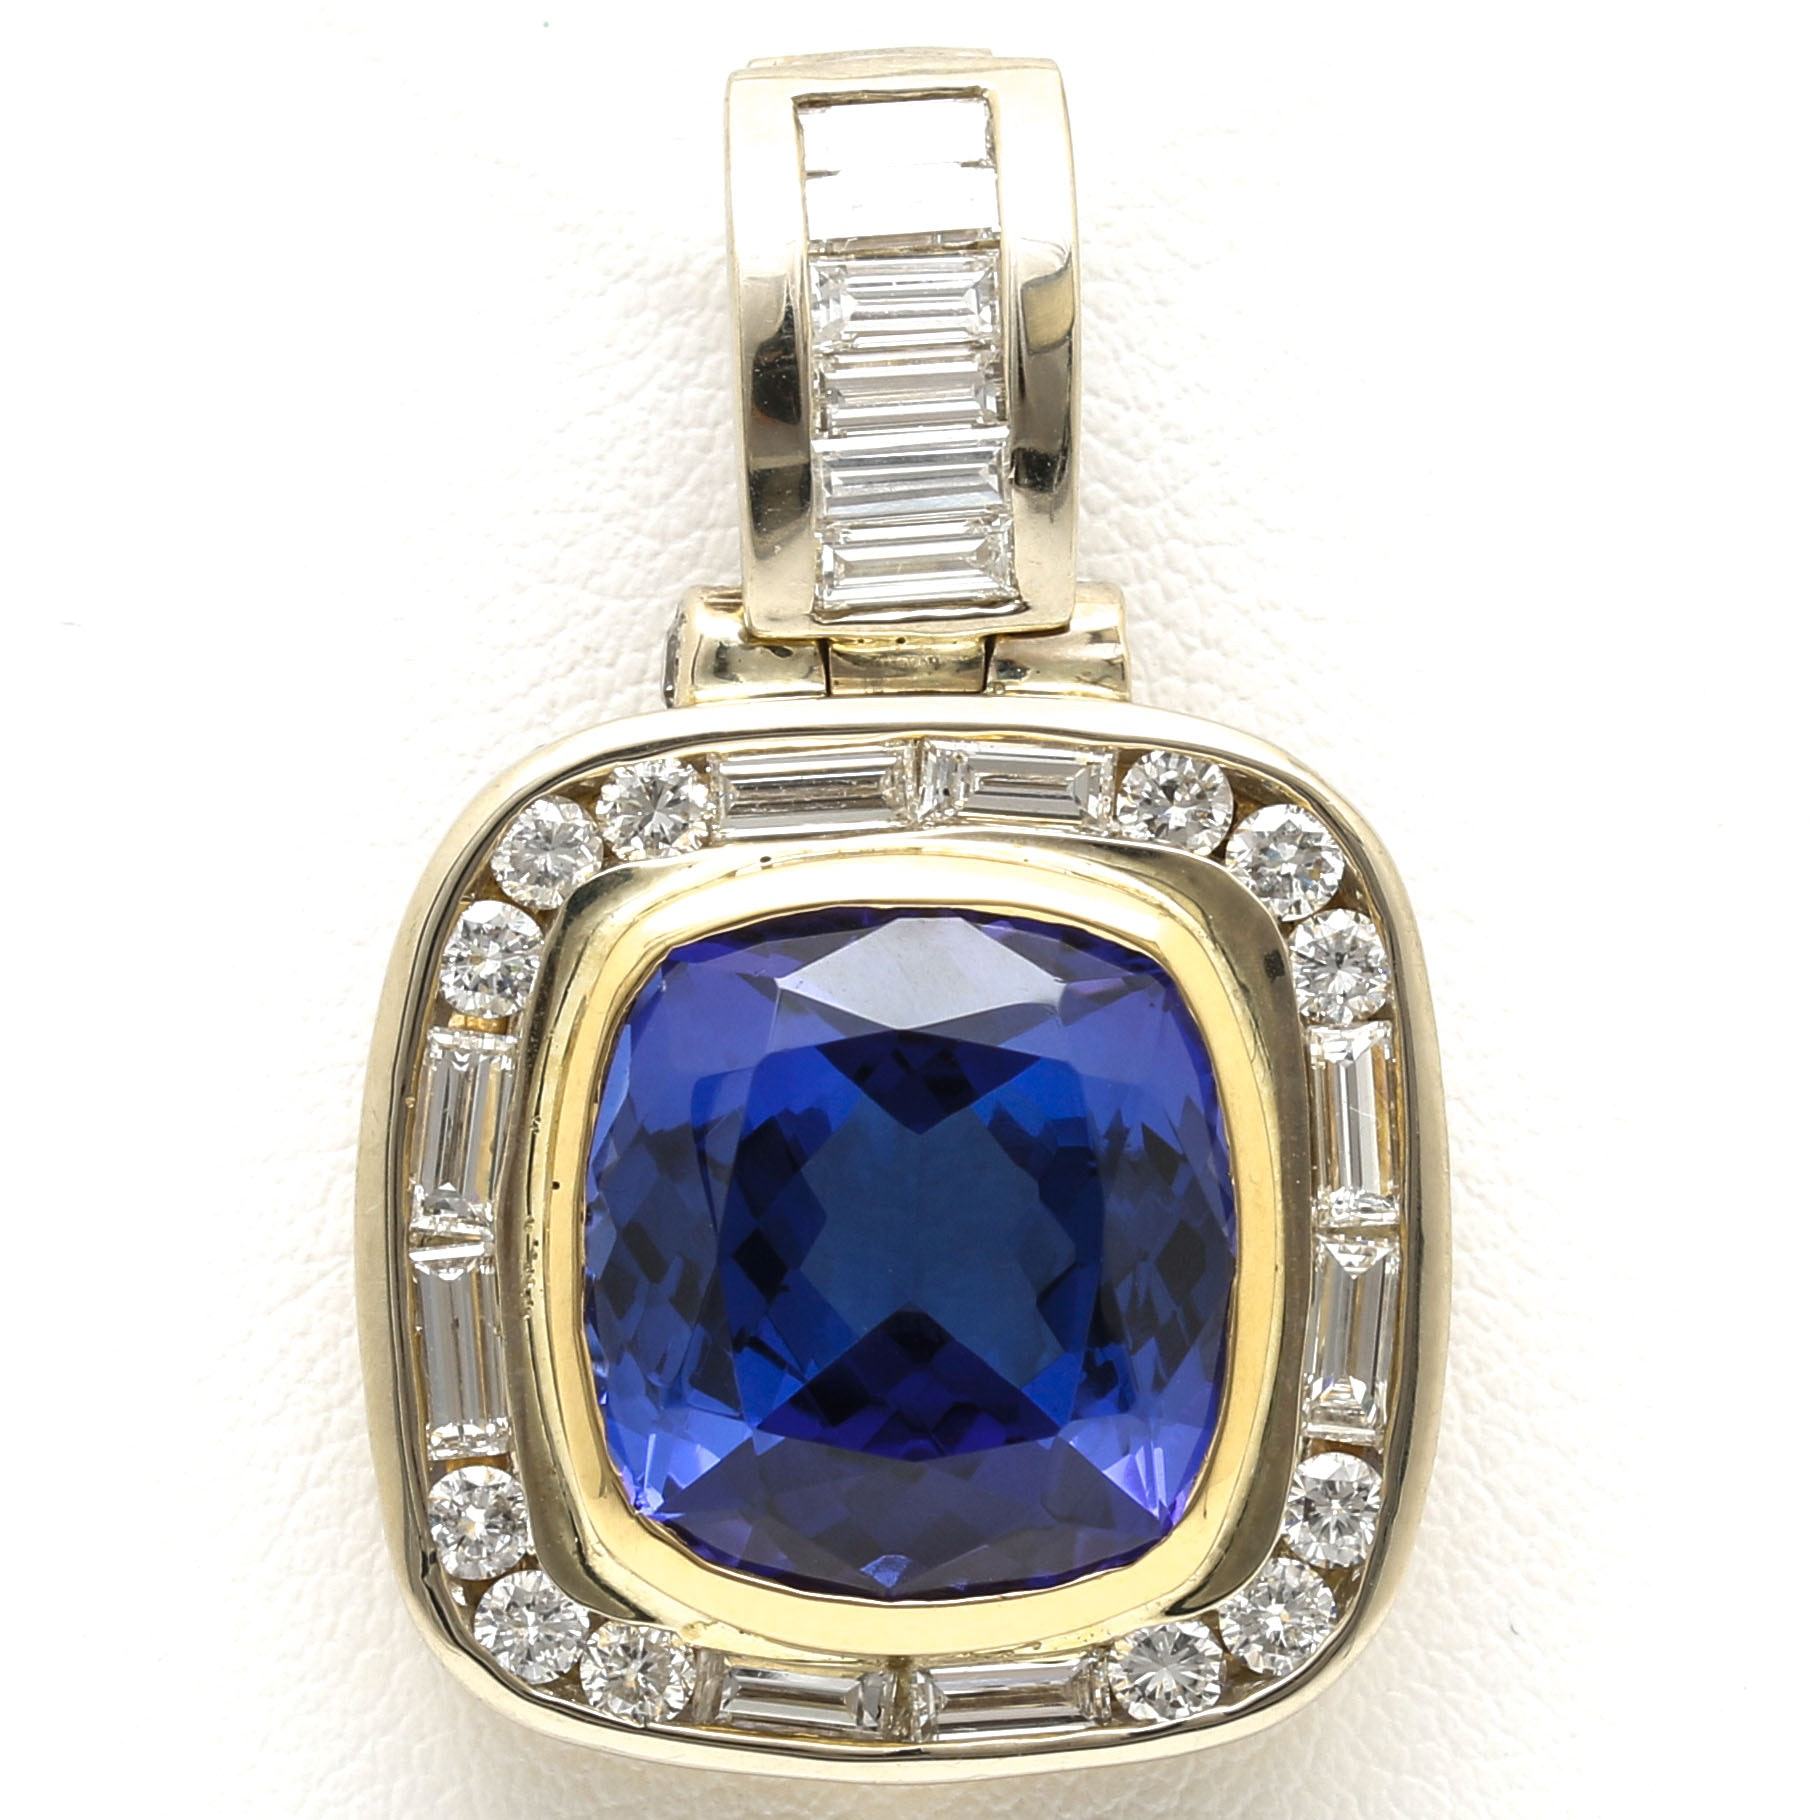 14K and 18K Two Toned Gold 9.07 CTS Tanzanite and 1.78 CTW Diamond Enhancer Pendant